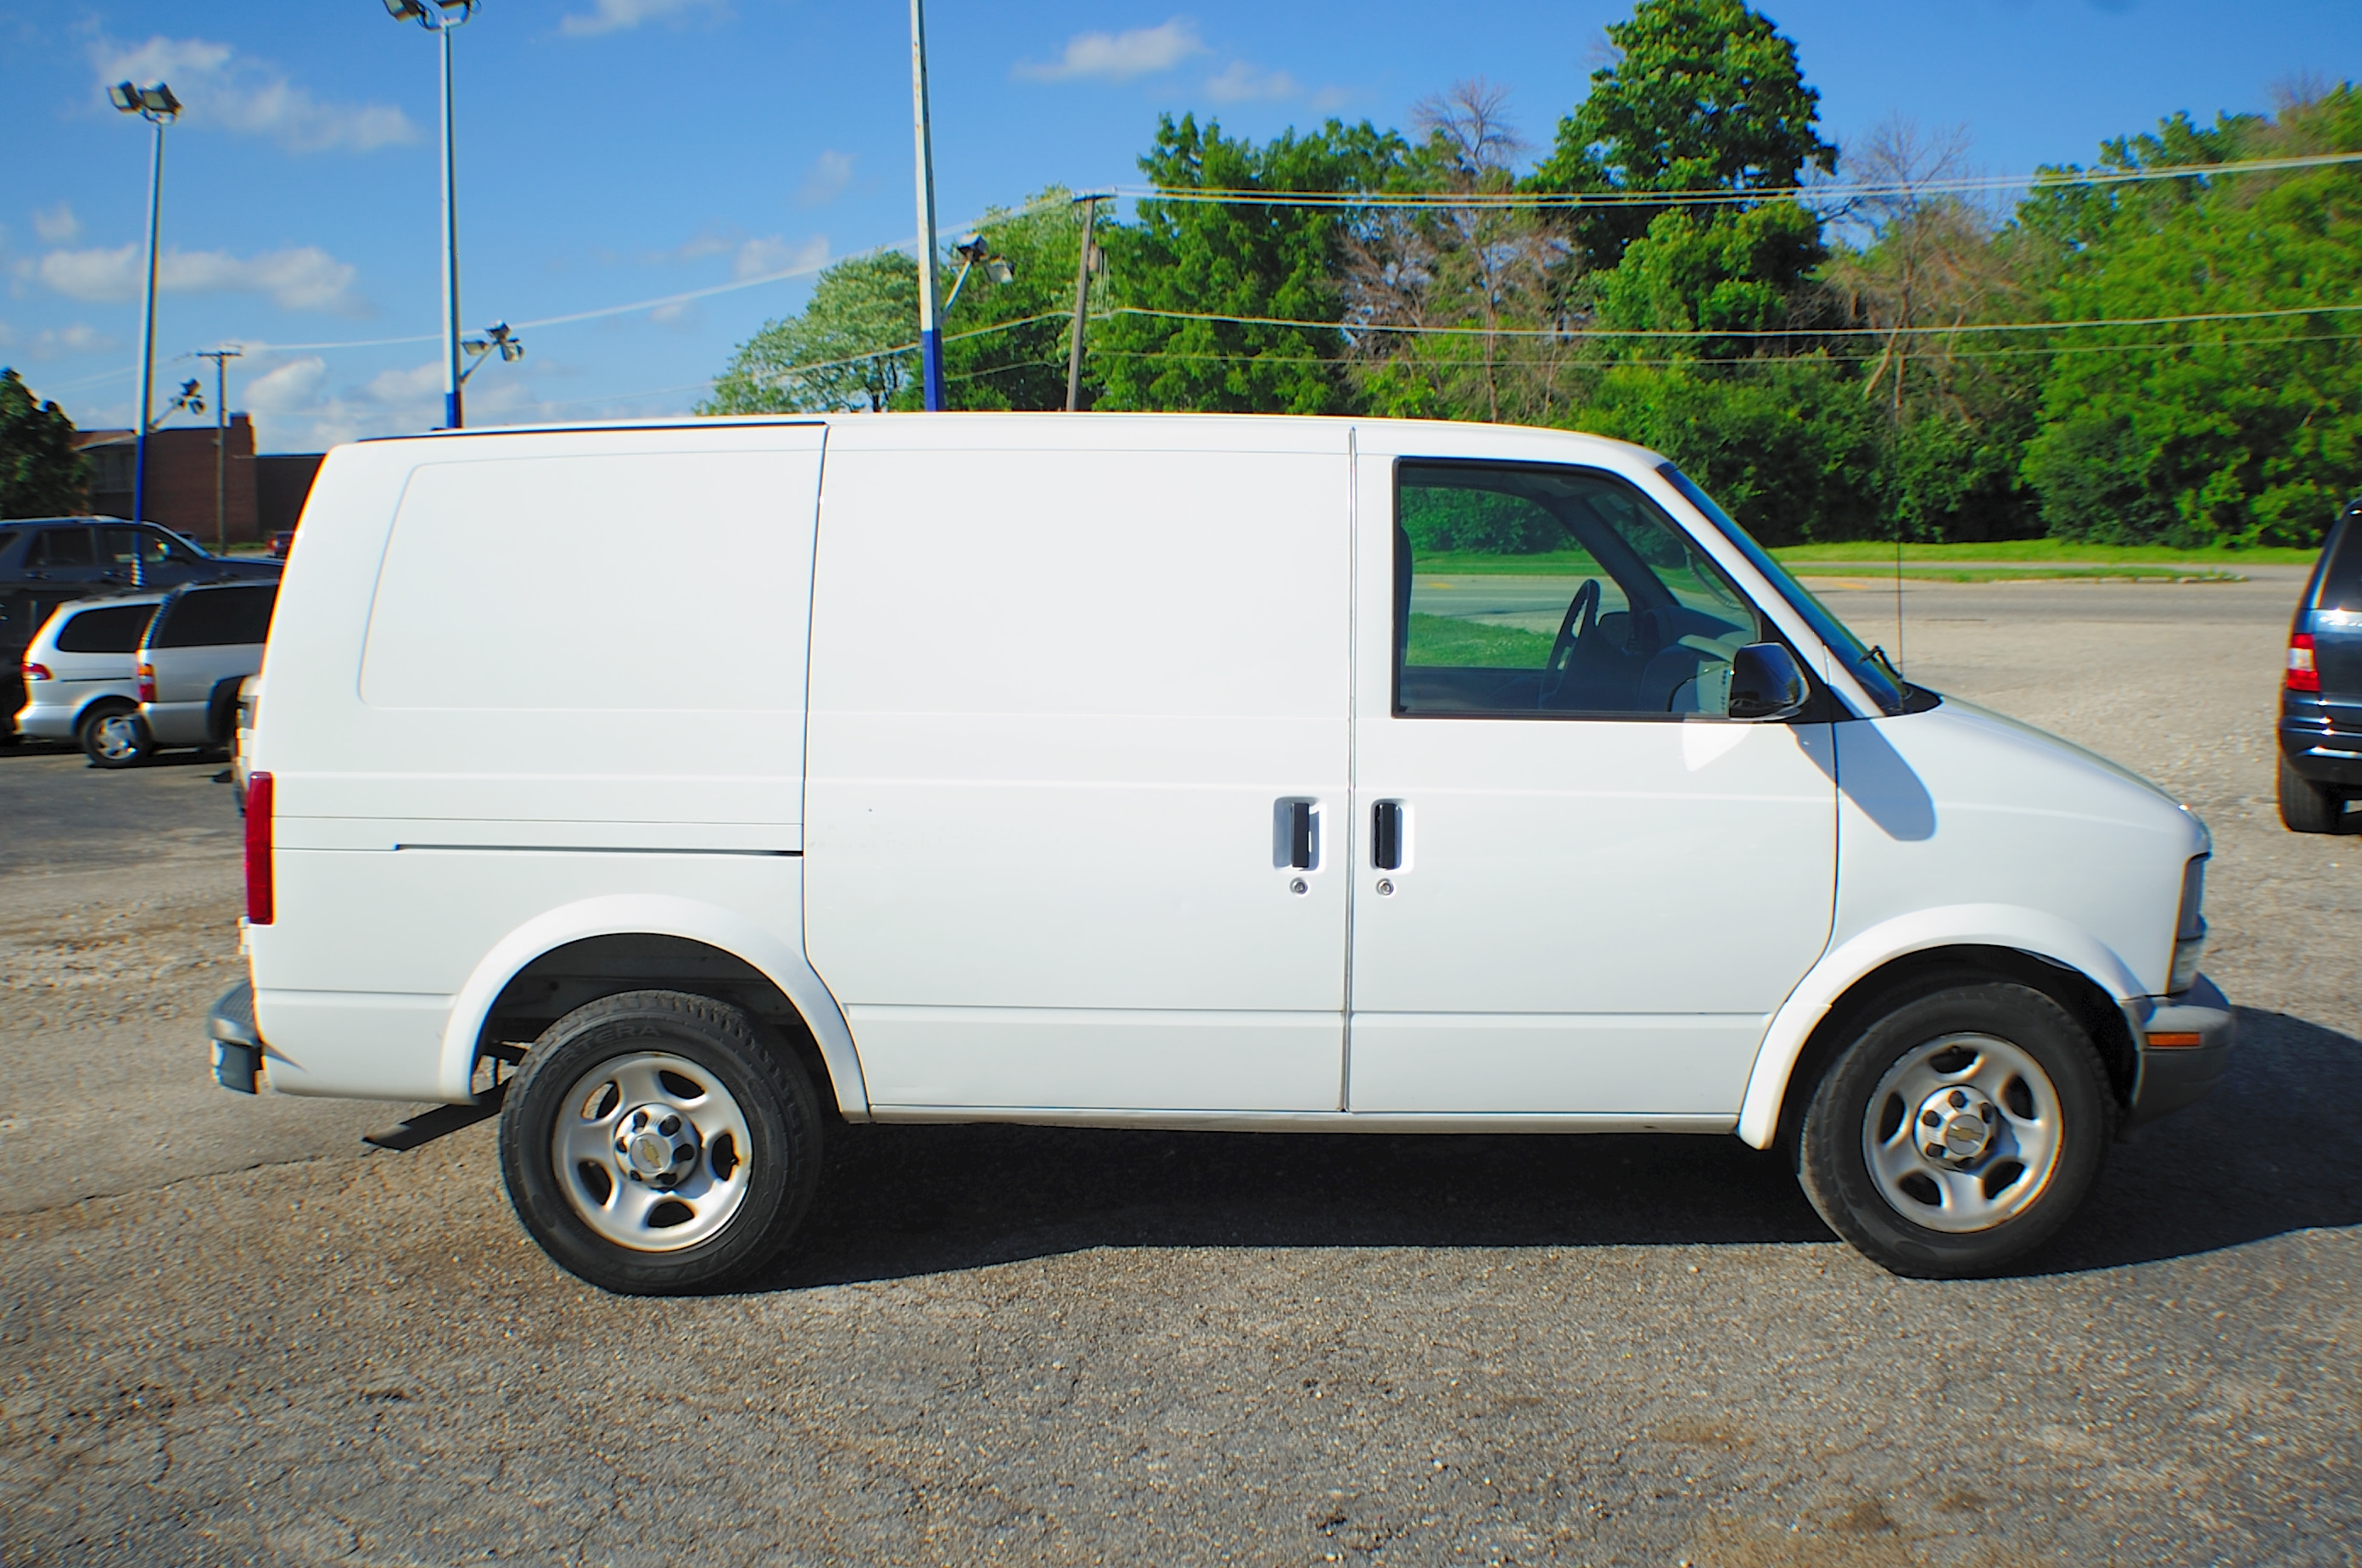 2005 Chevrolet Astro White Used Commercial Work Van Sale Lindenhurst Gurnee